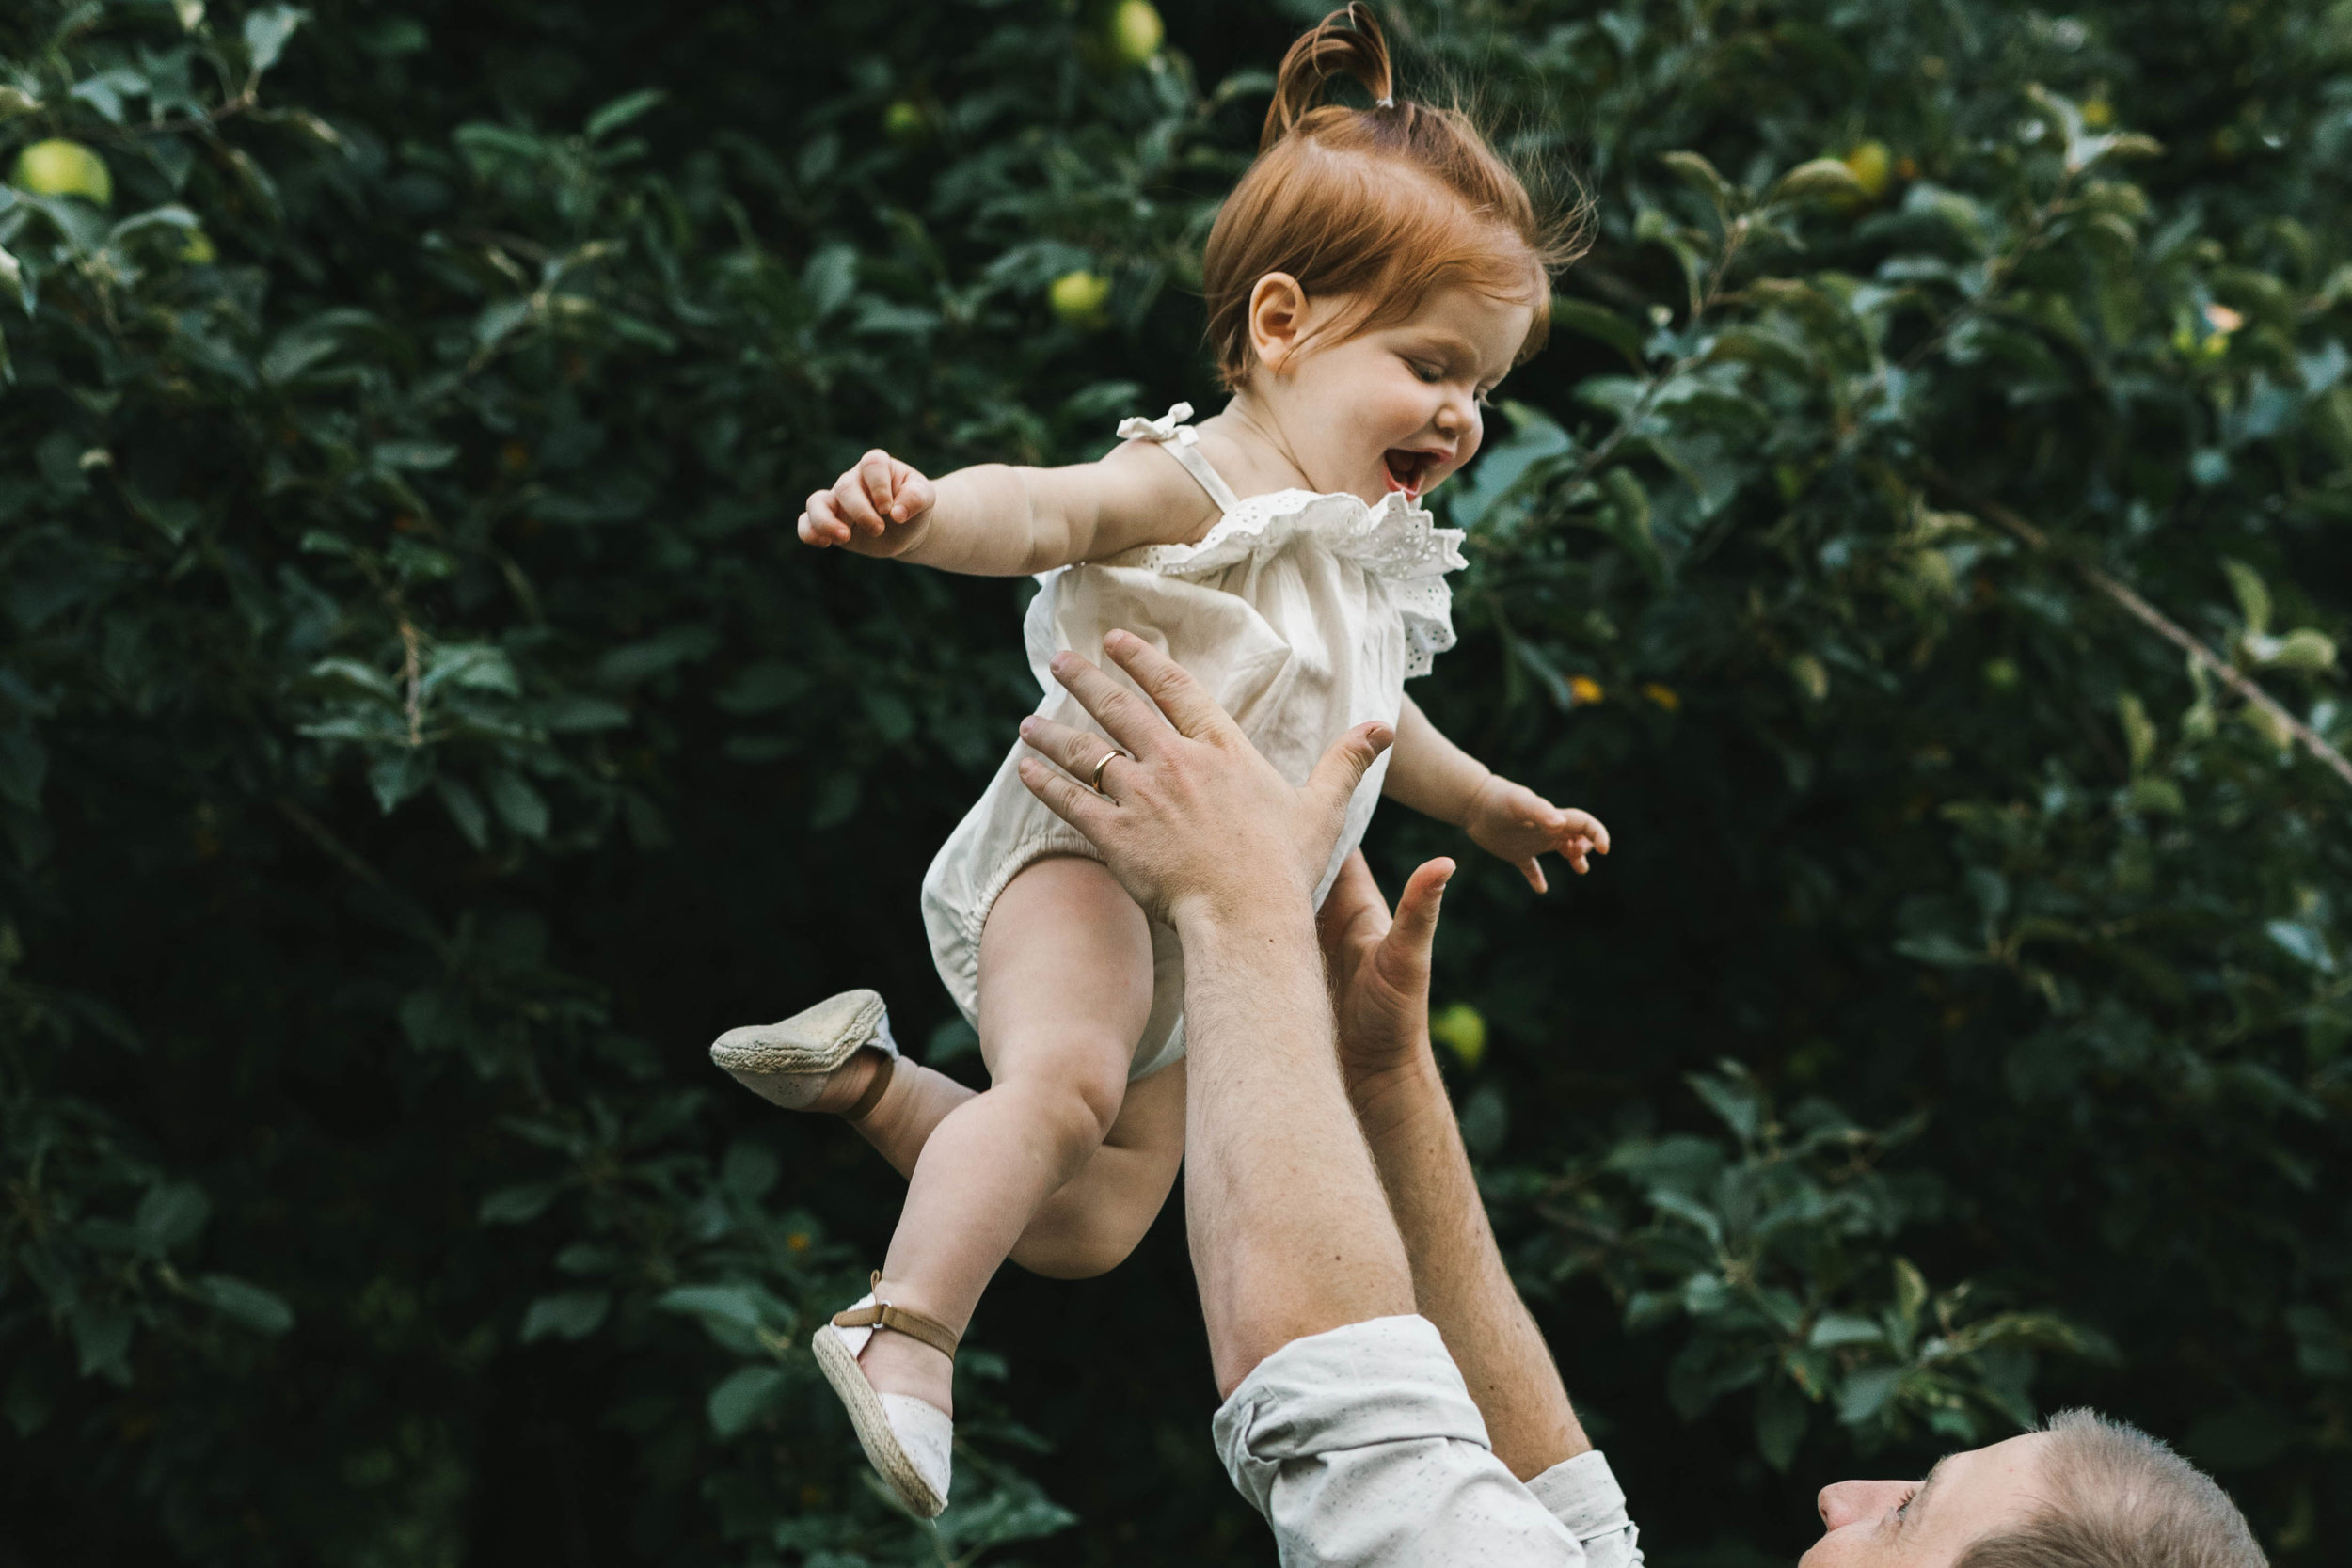 Playful and sweet family session in Issaquah at golden hour and twilight Mom and Dad with their toddler photographed by Chelsea Macor Photography in a playful and intimate way-16.jpg